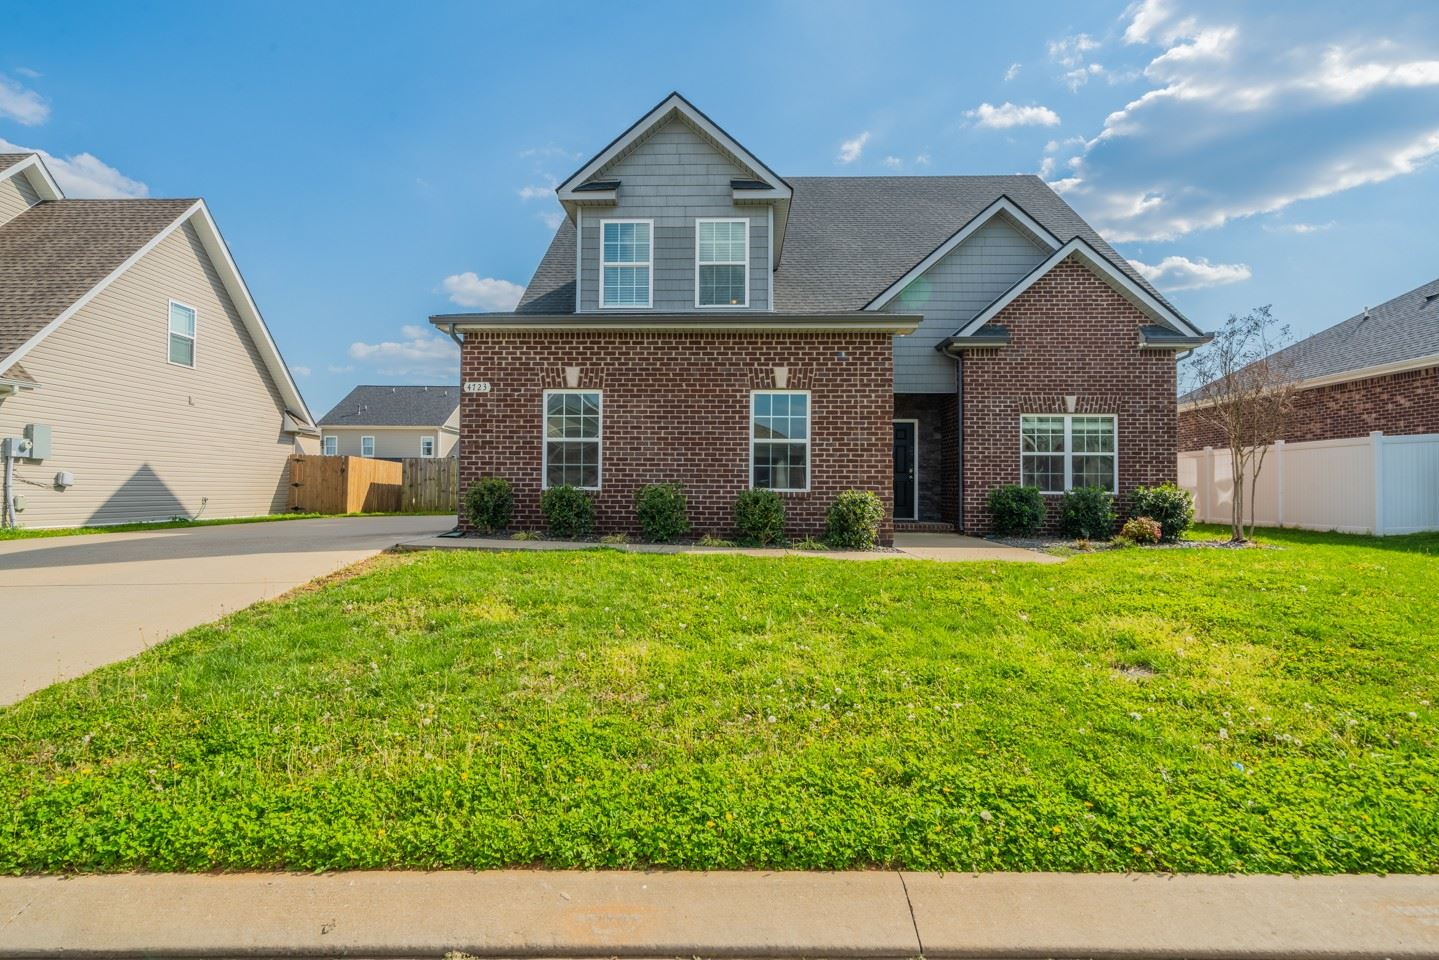 4723 Compassion Ln, Murfreesboro, TN 37128 - MLS#: 2243108